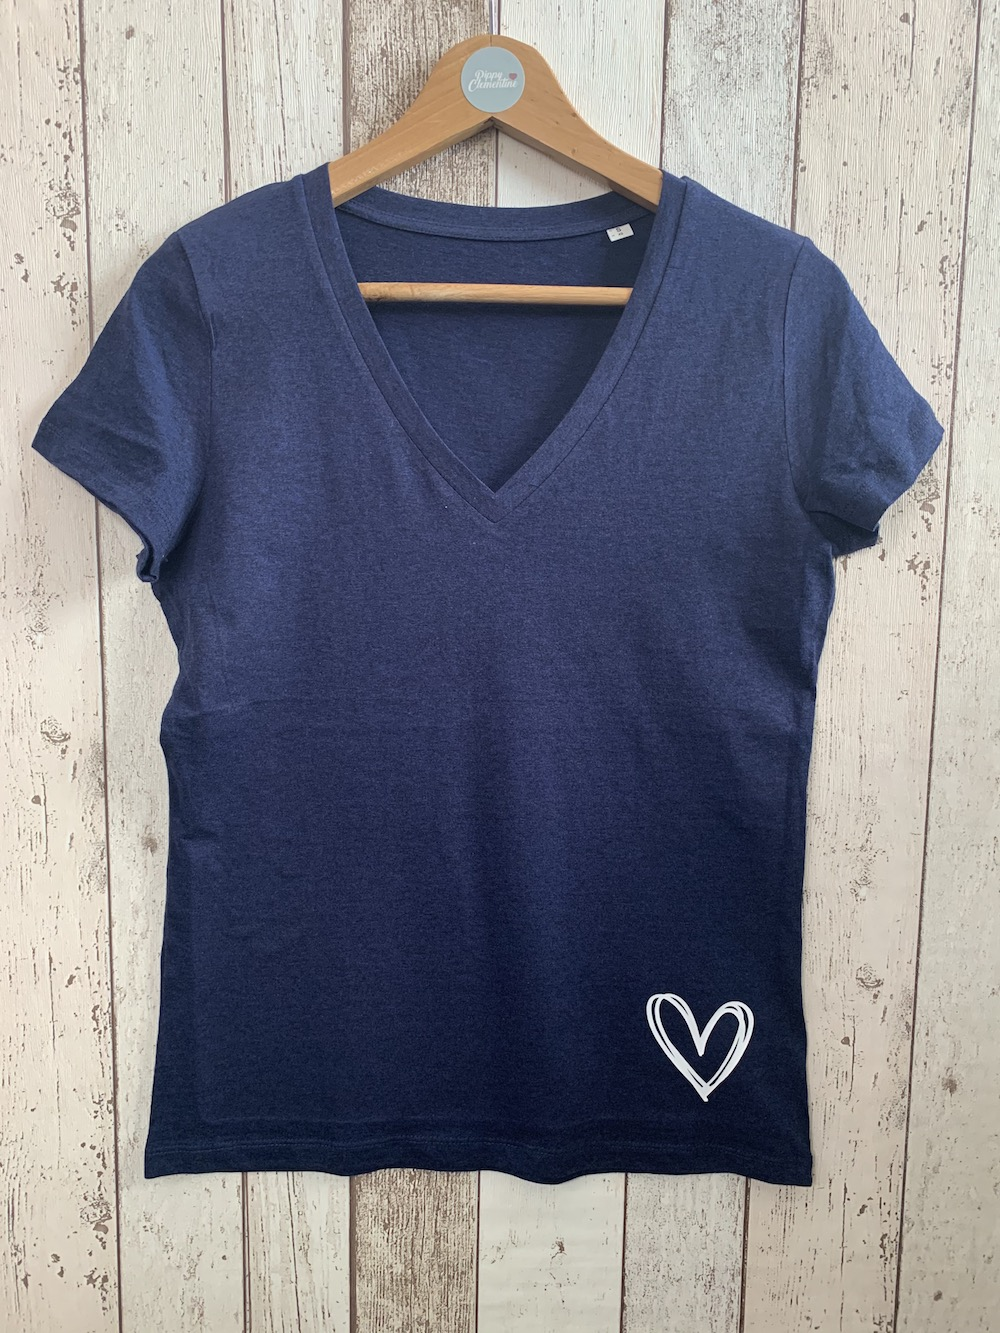 Heart V Neck Classic Tshirt – Navy And White